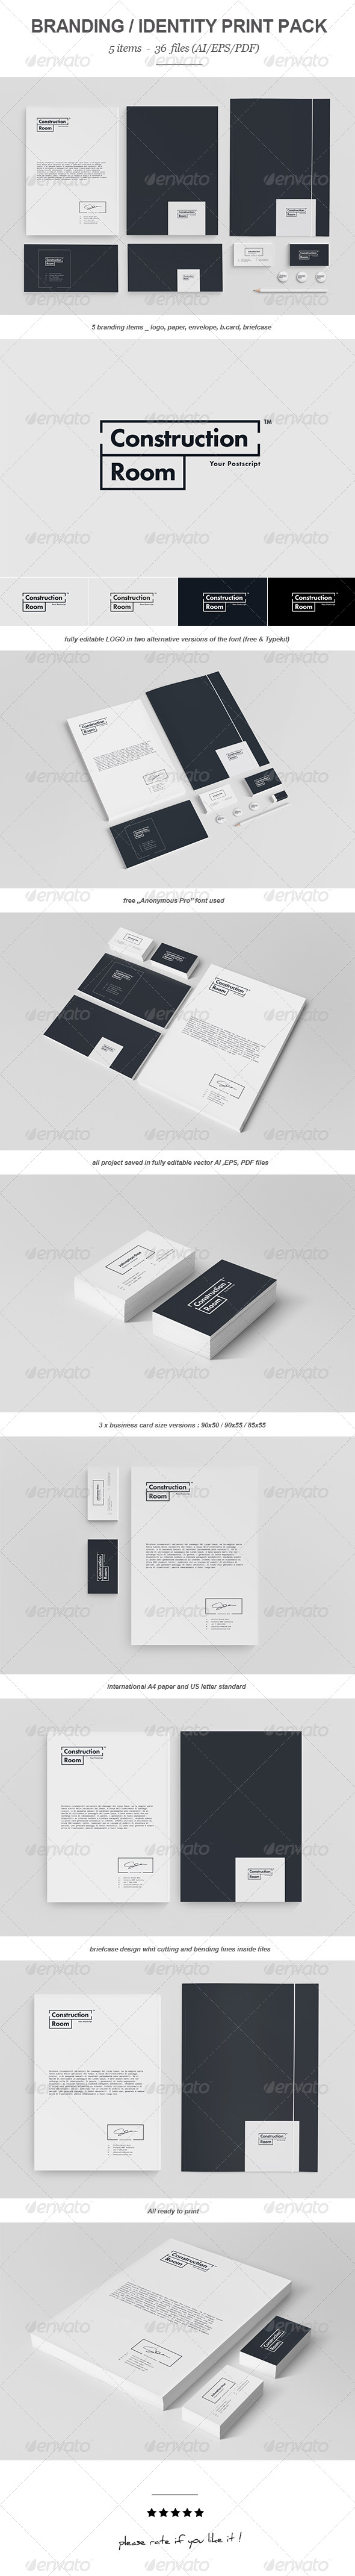 GraphicRiver Construction Room Branding Print Pack 7737882